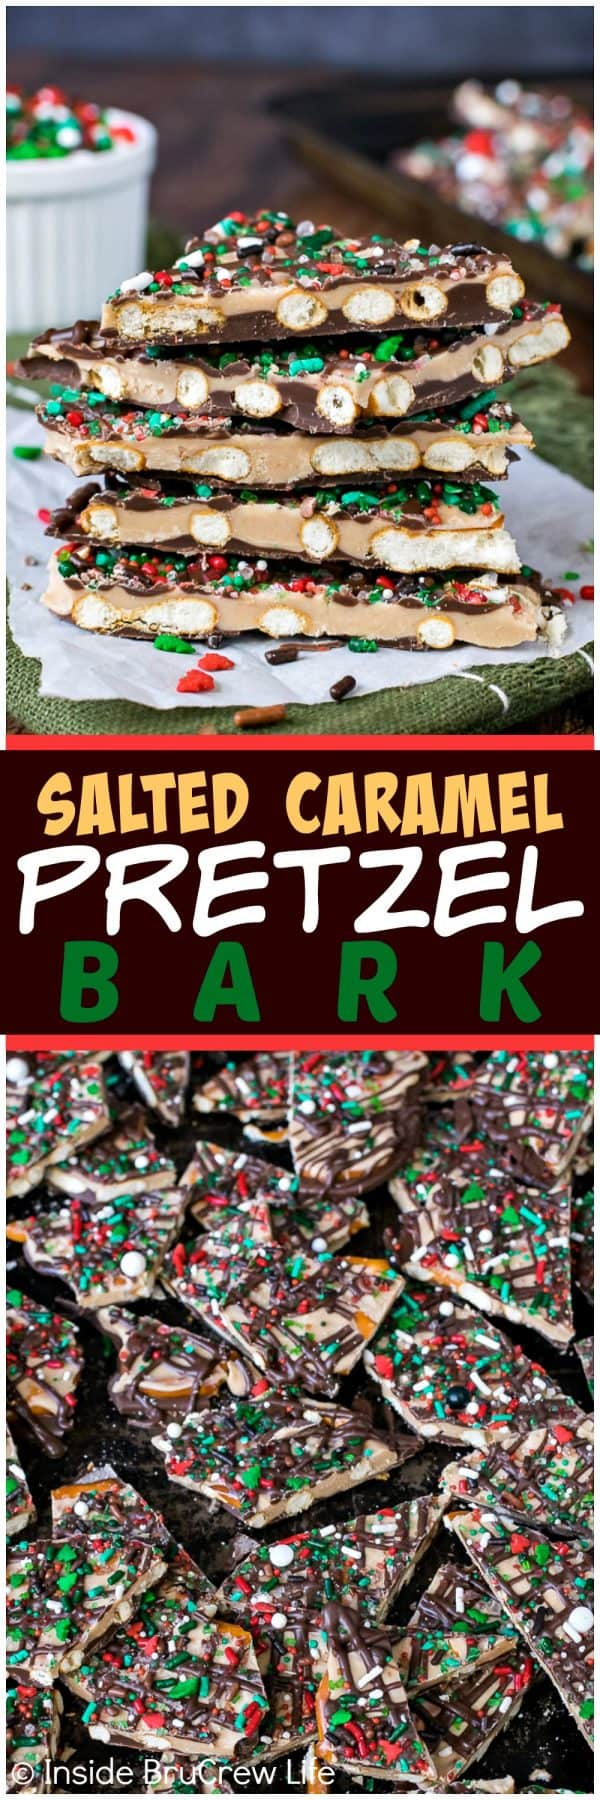 Salted Caramel Pretzel Bark - two layers of chocolate and sprinkles on pretzels make this a delicious sweet and salty treat. Easy recipe for holiday parties! #chocolate #saltedcaramel #bark #candy #sweetandsalty #easy #holidaycandy